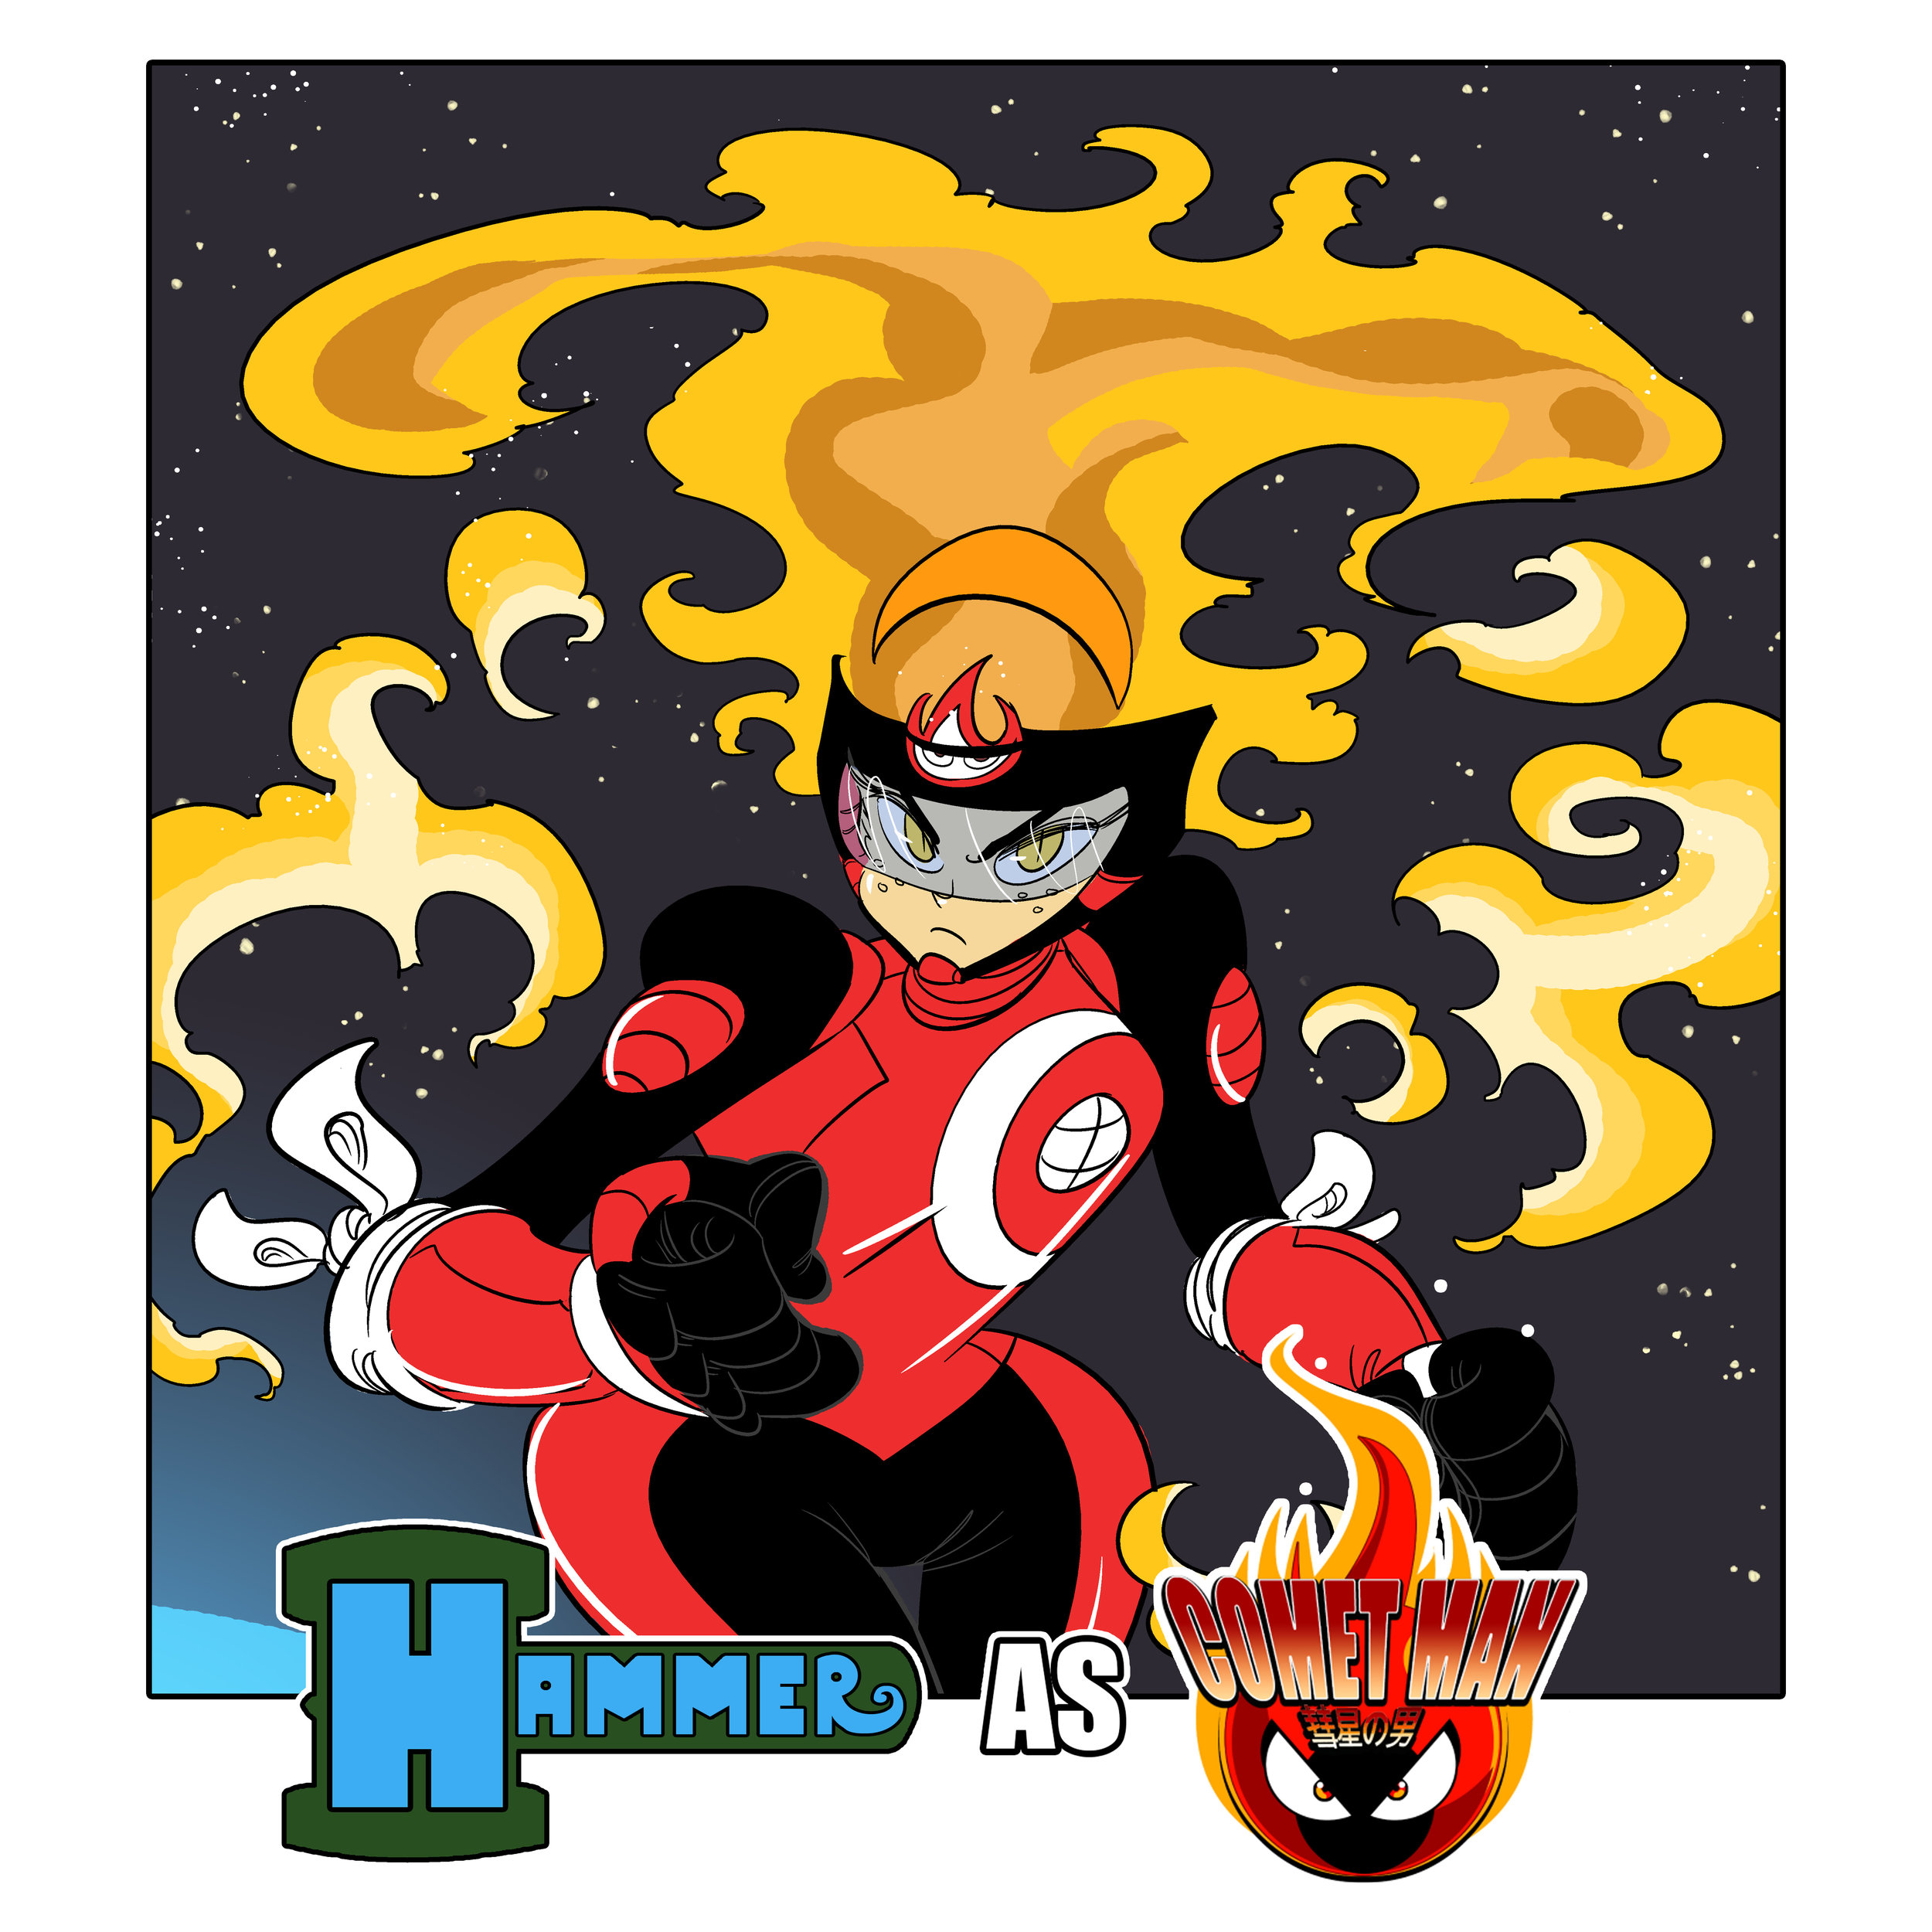 HAMMER AS COMETMAN.jpg